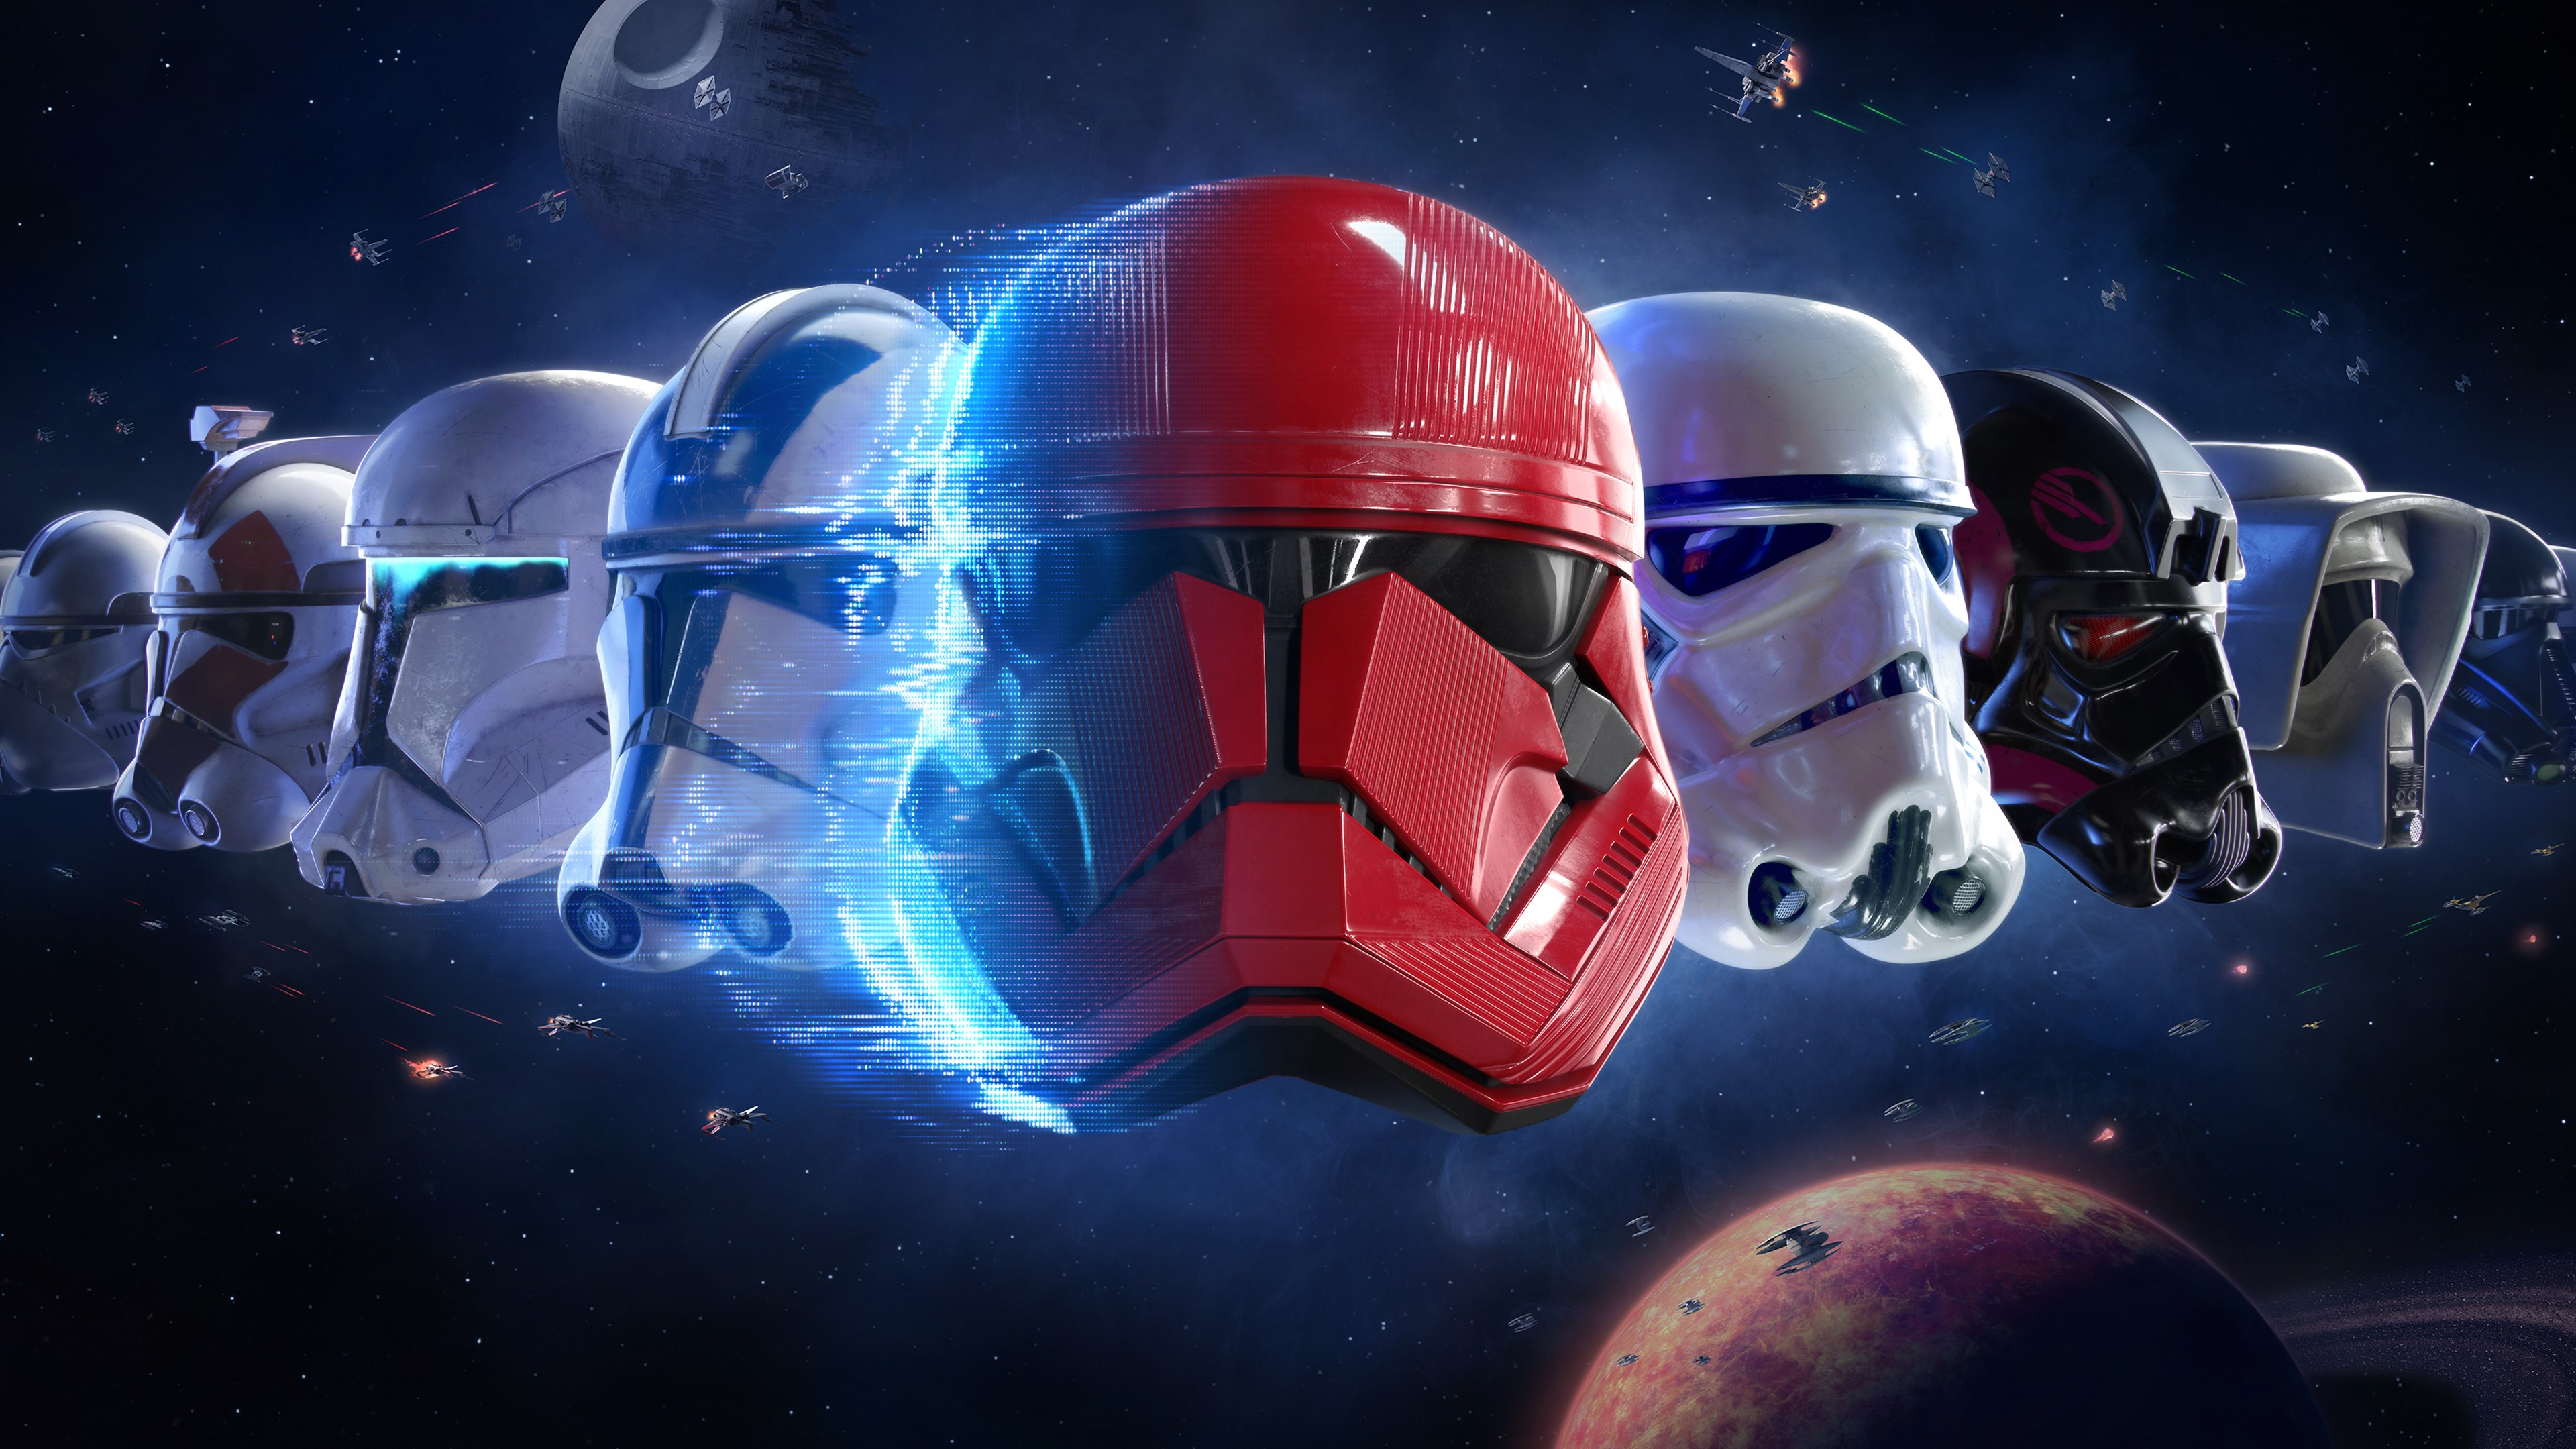 Wallpaper Of Star Wars Star Wars Battlefront Ii Stormtrooper